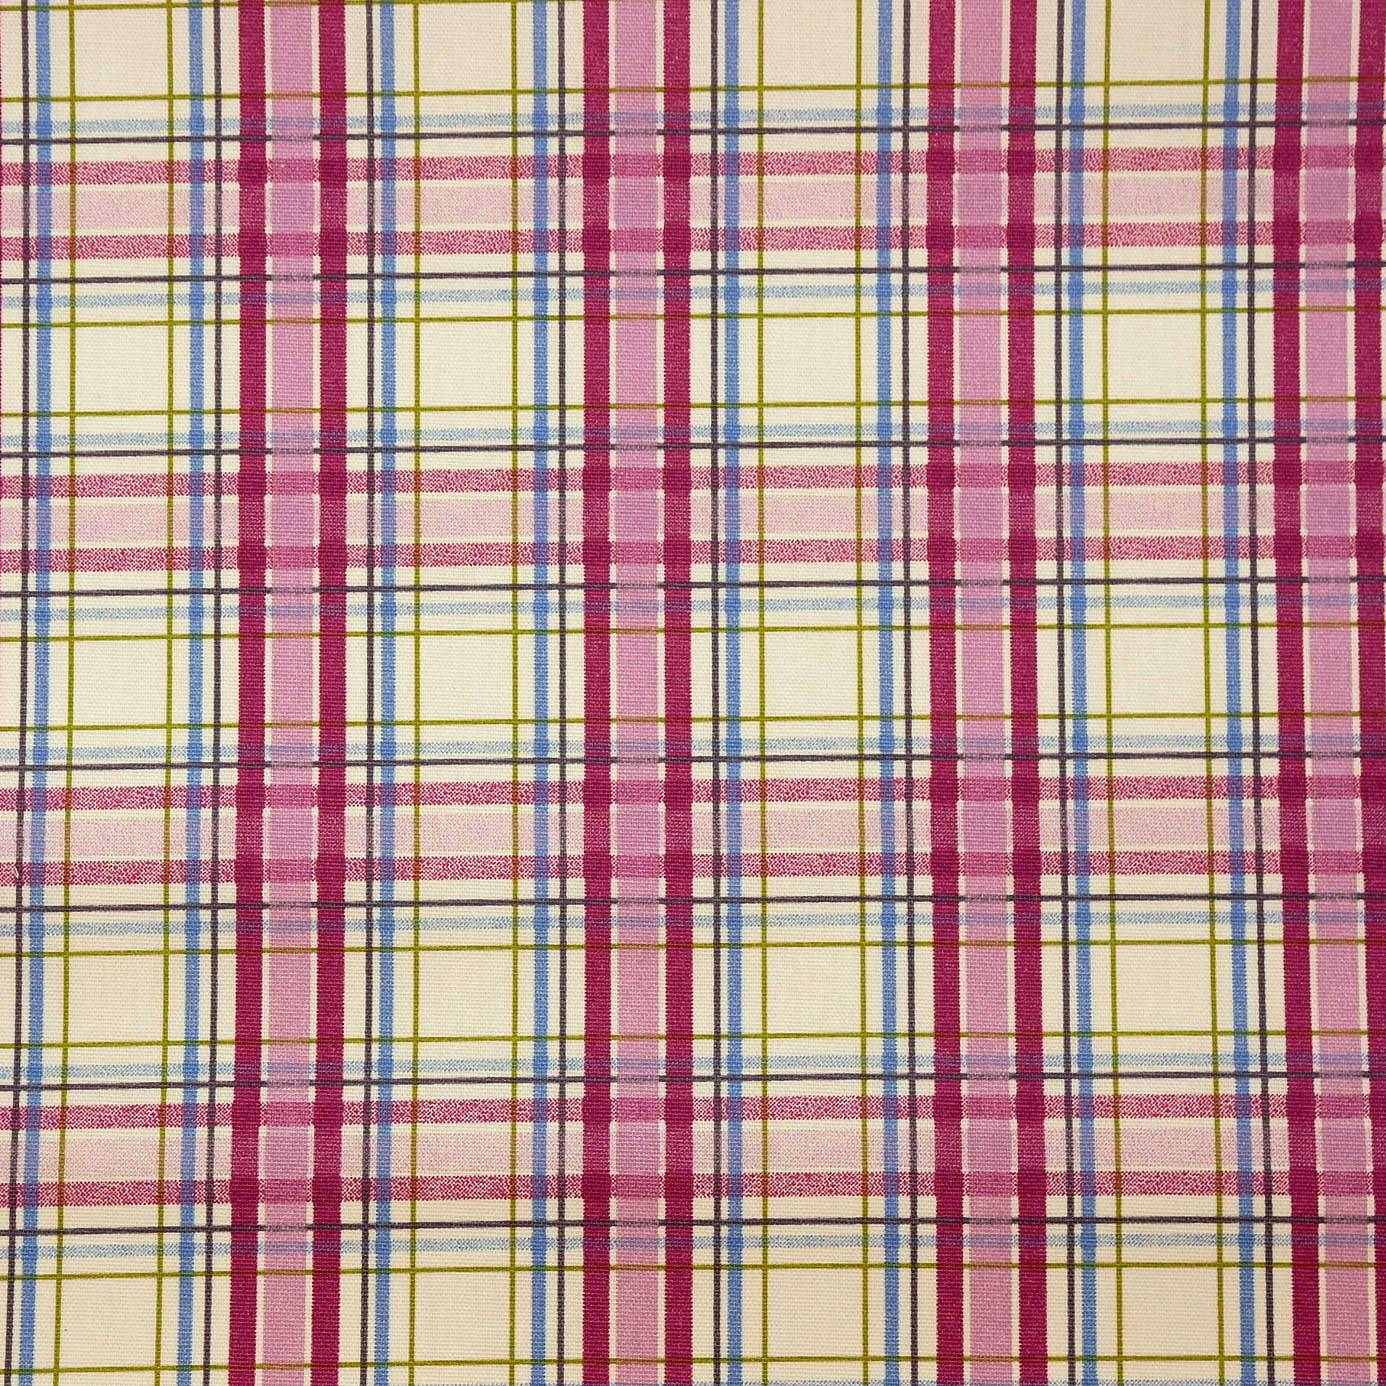 Country Check Fabric Mulberry 5902 314 Prestigious